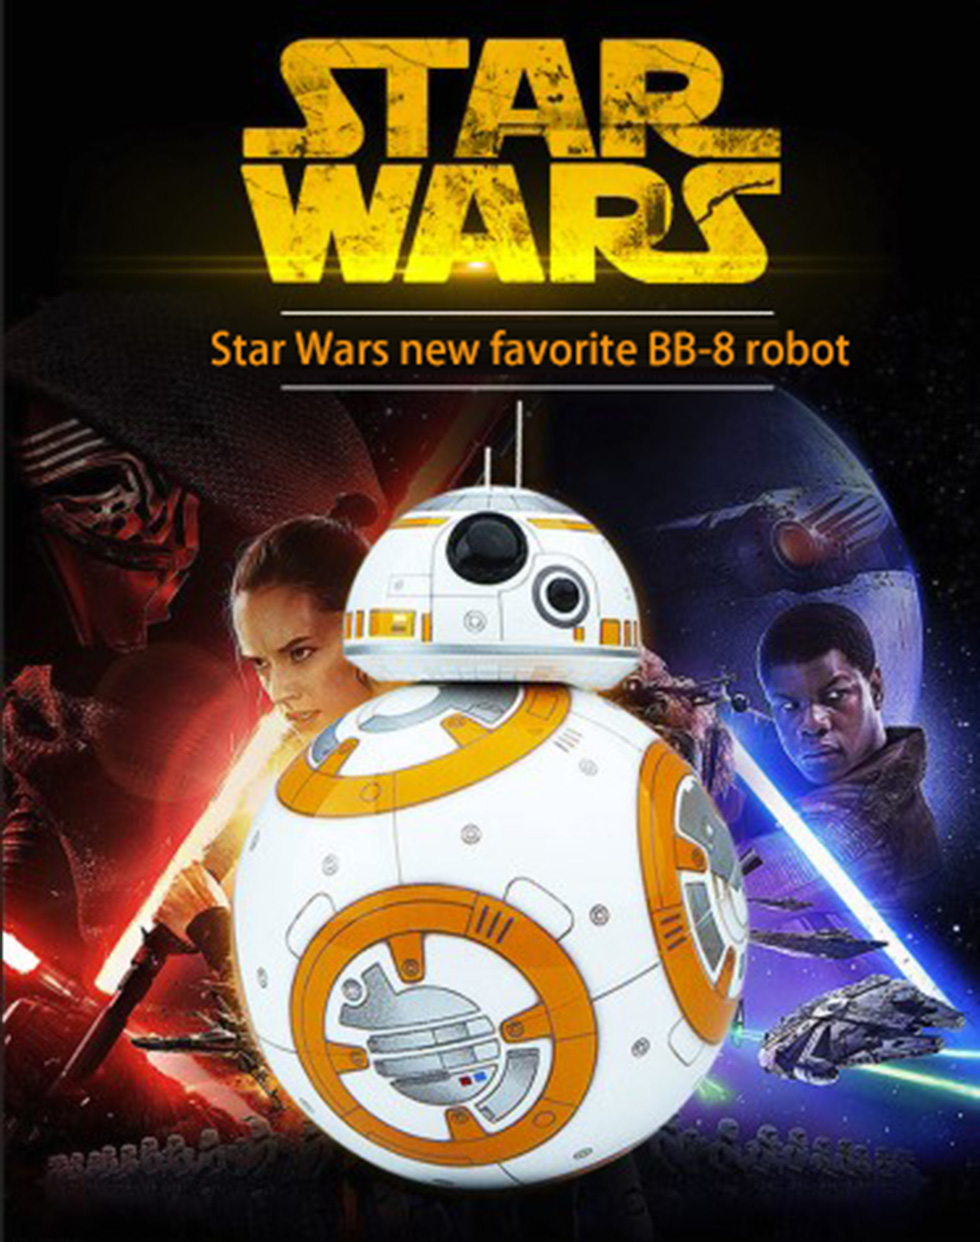 Free shipping 17cm Star Wars RC 2.4G BB-8 Robot upgrade remote control BB8 robot intelligent with sound RC Ball kid gift boy toy 2 4g remote control bb 8 robot upgrade rc bb8 robot with sound and dancing action figure gift toys intelligent bb 8 ball toy 01